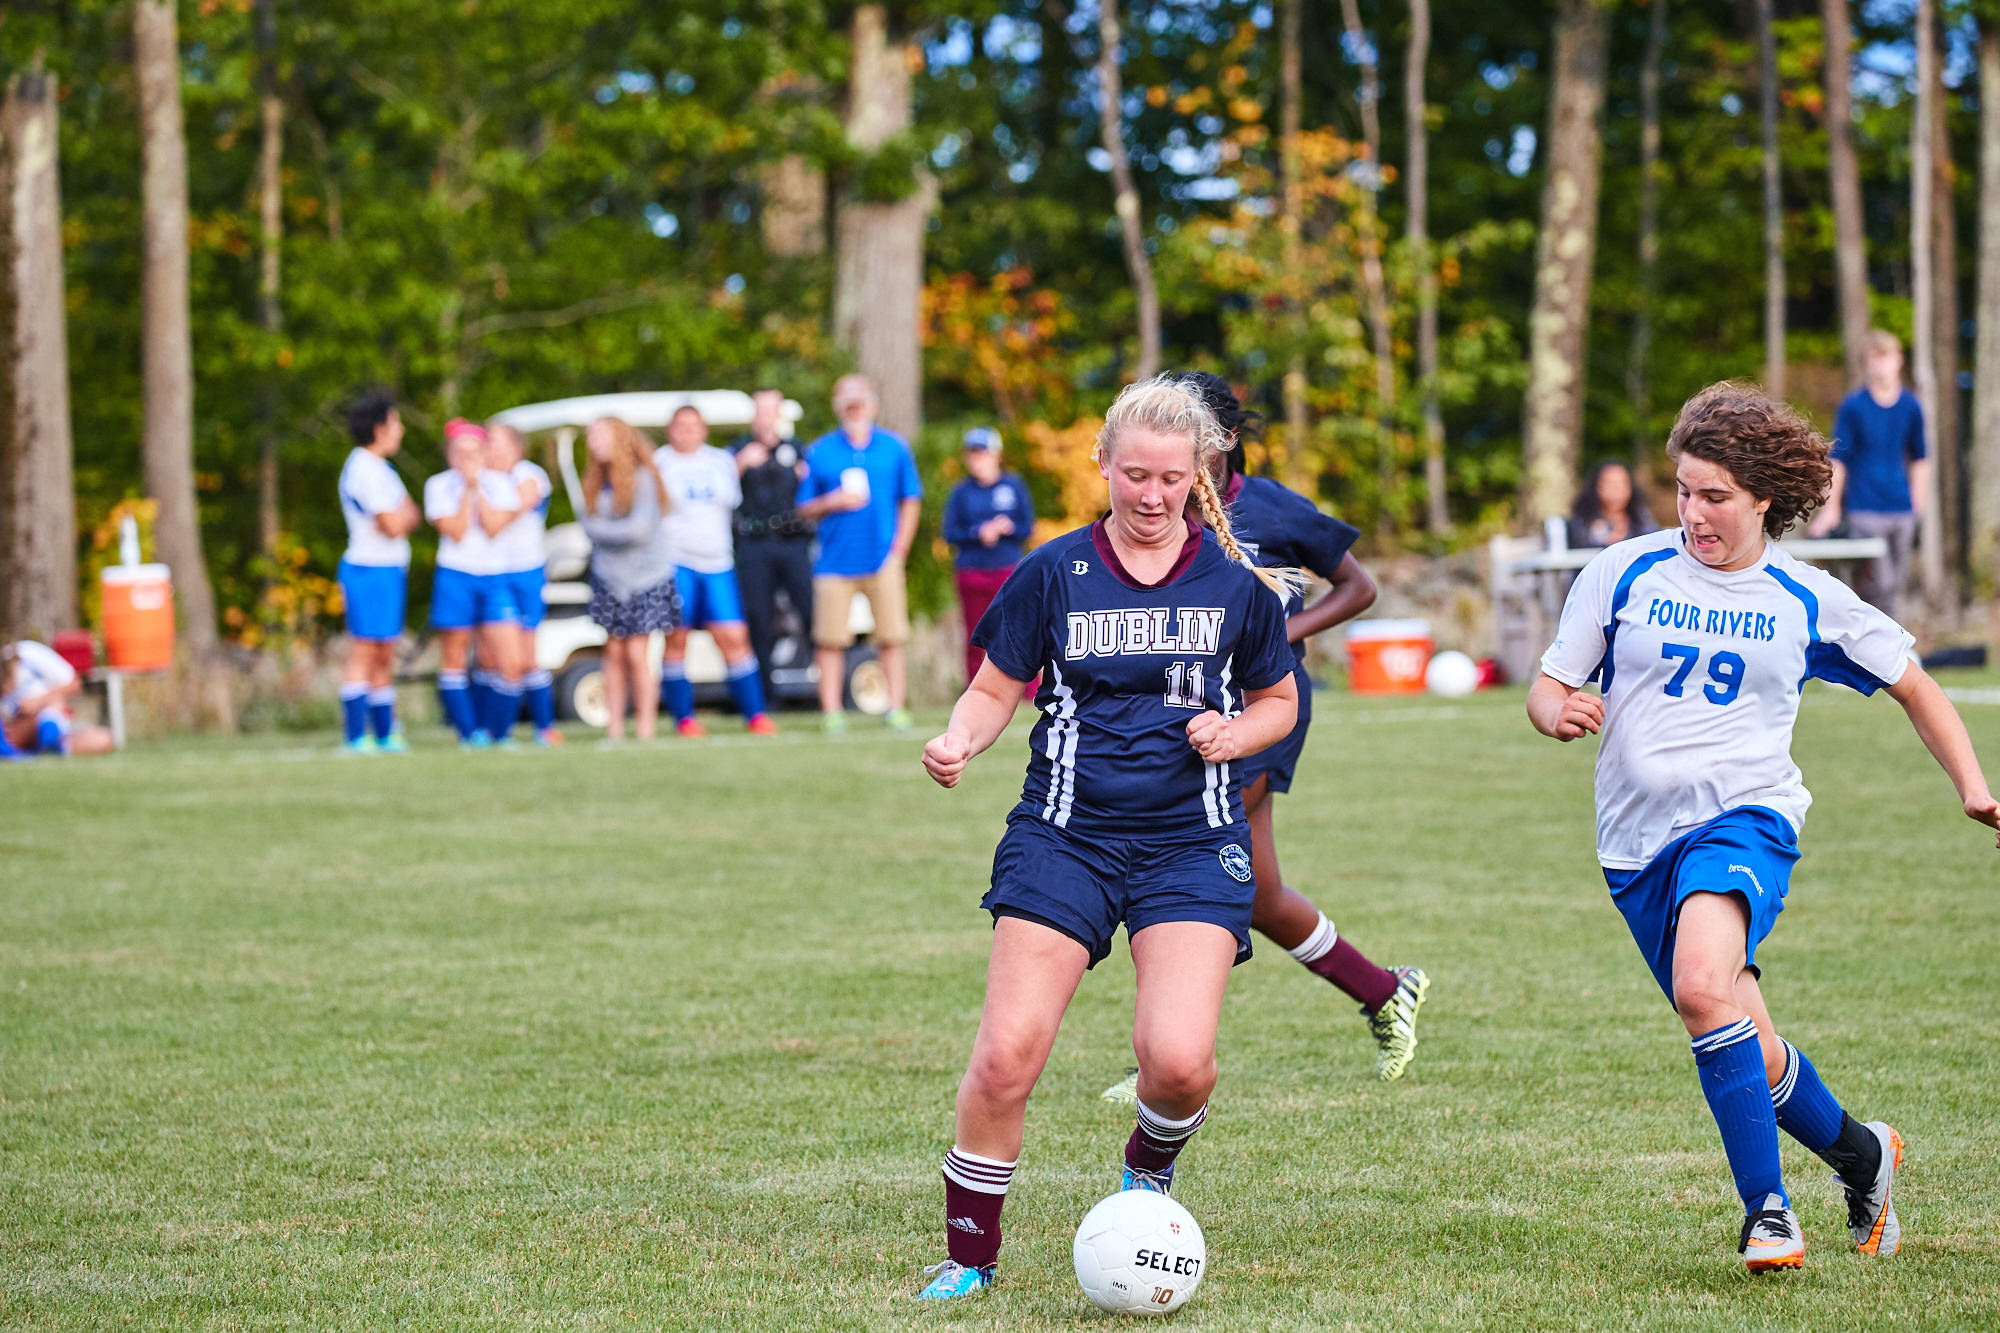 Girls Varsity Soccer vs. Four Rivers Charter Public School - September 23, 2016 - 41960- 000169.jpg